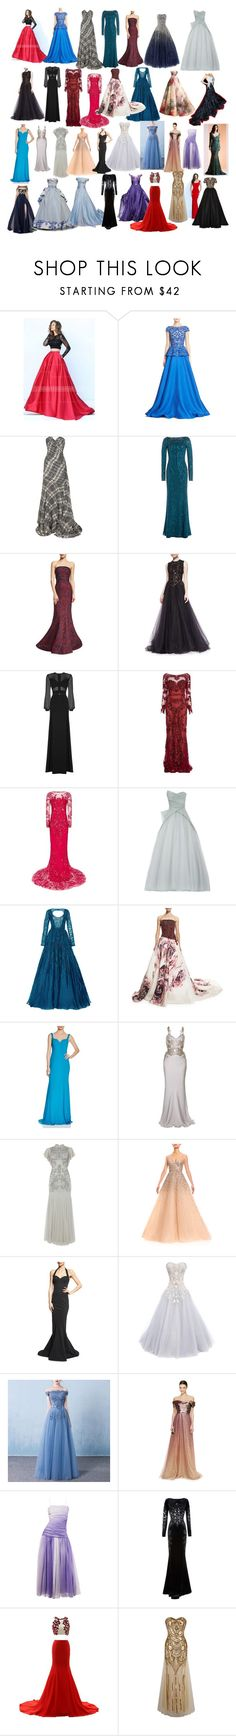 """Some of my favorite dresses #2"" by andyarana ❤ liked on Polyvore featuring Naeem Khan, Oscar de la Renta, Jenny Packham, Zac Posen, Marchesa, Elie Saab, Zuhair Murad, Monique Lhuillier, Badgley Mischka and Alexander McQueen"